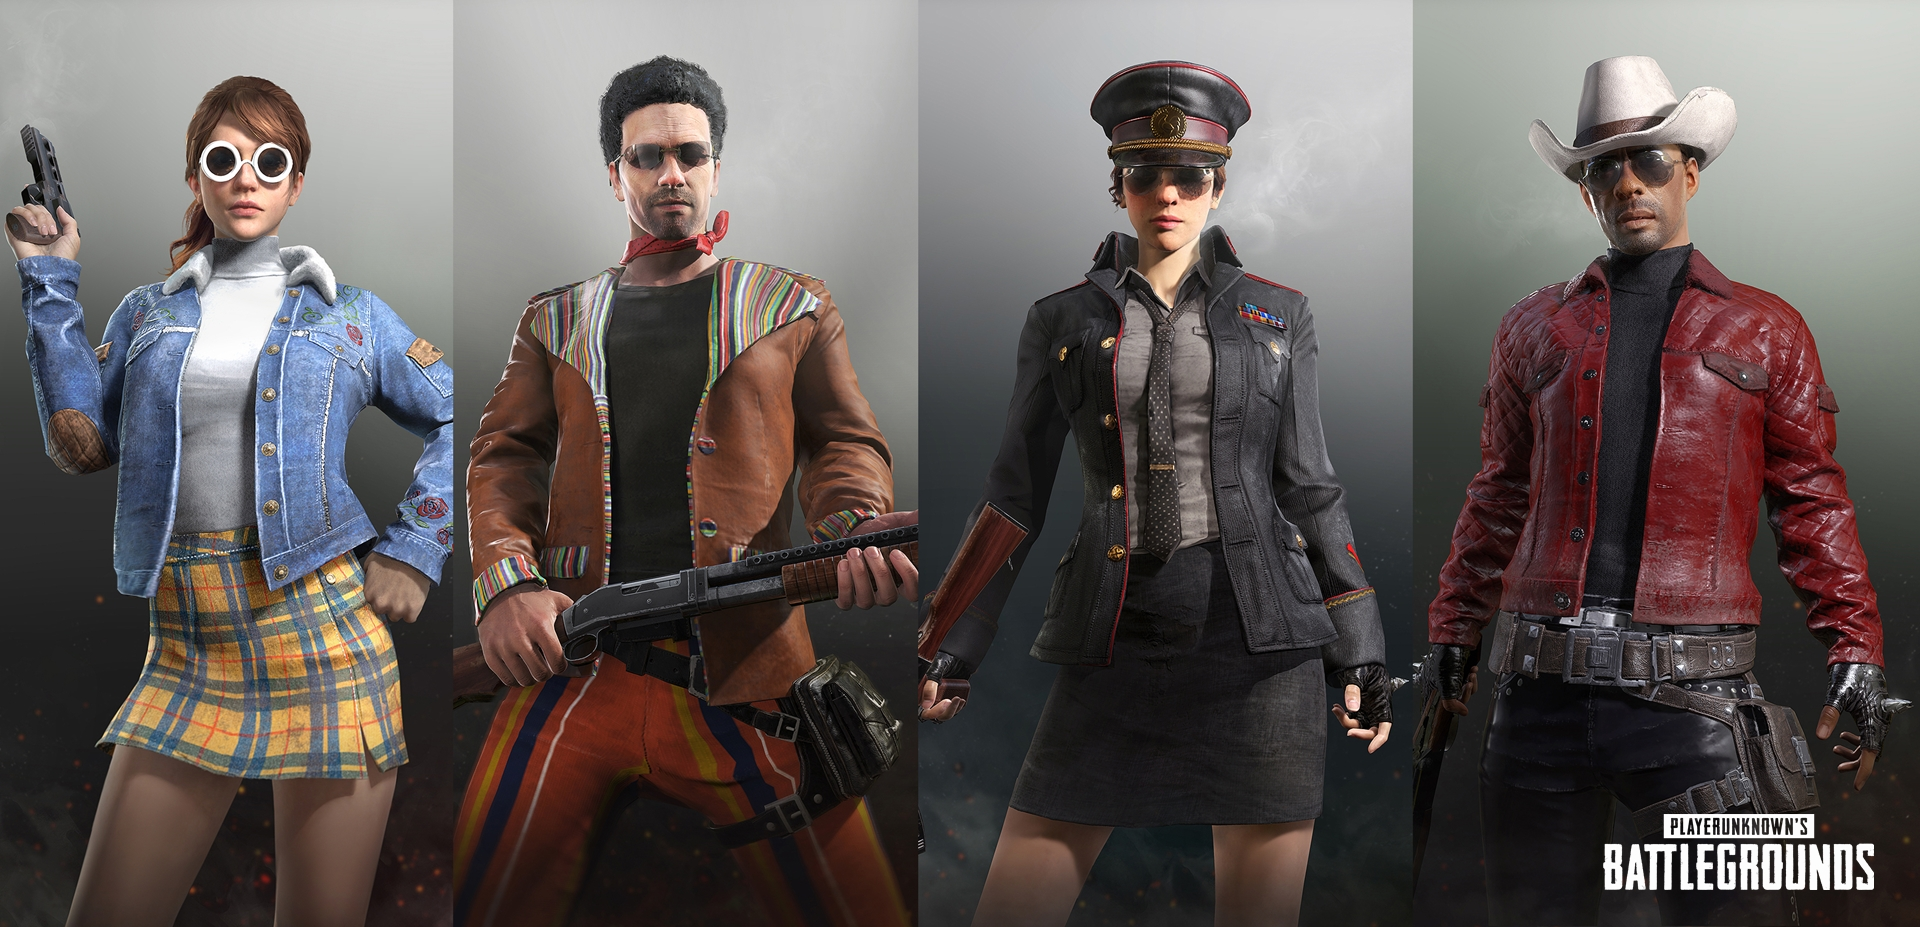 PUBG is resetting its leaderboards early, play will be unranked for now